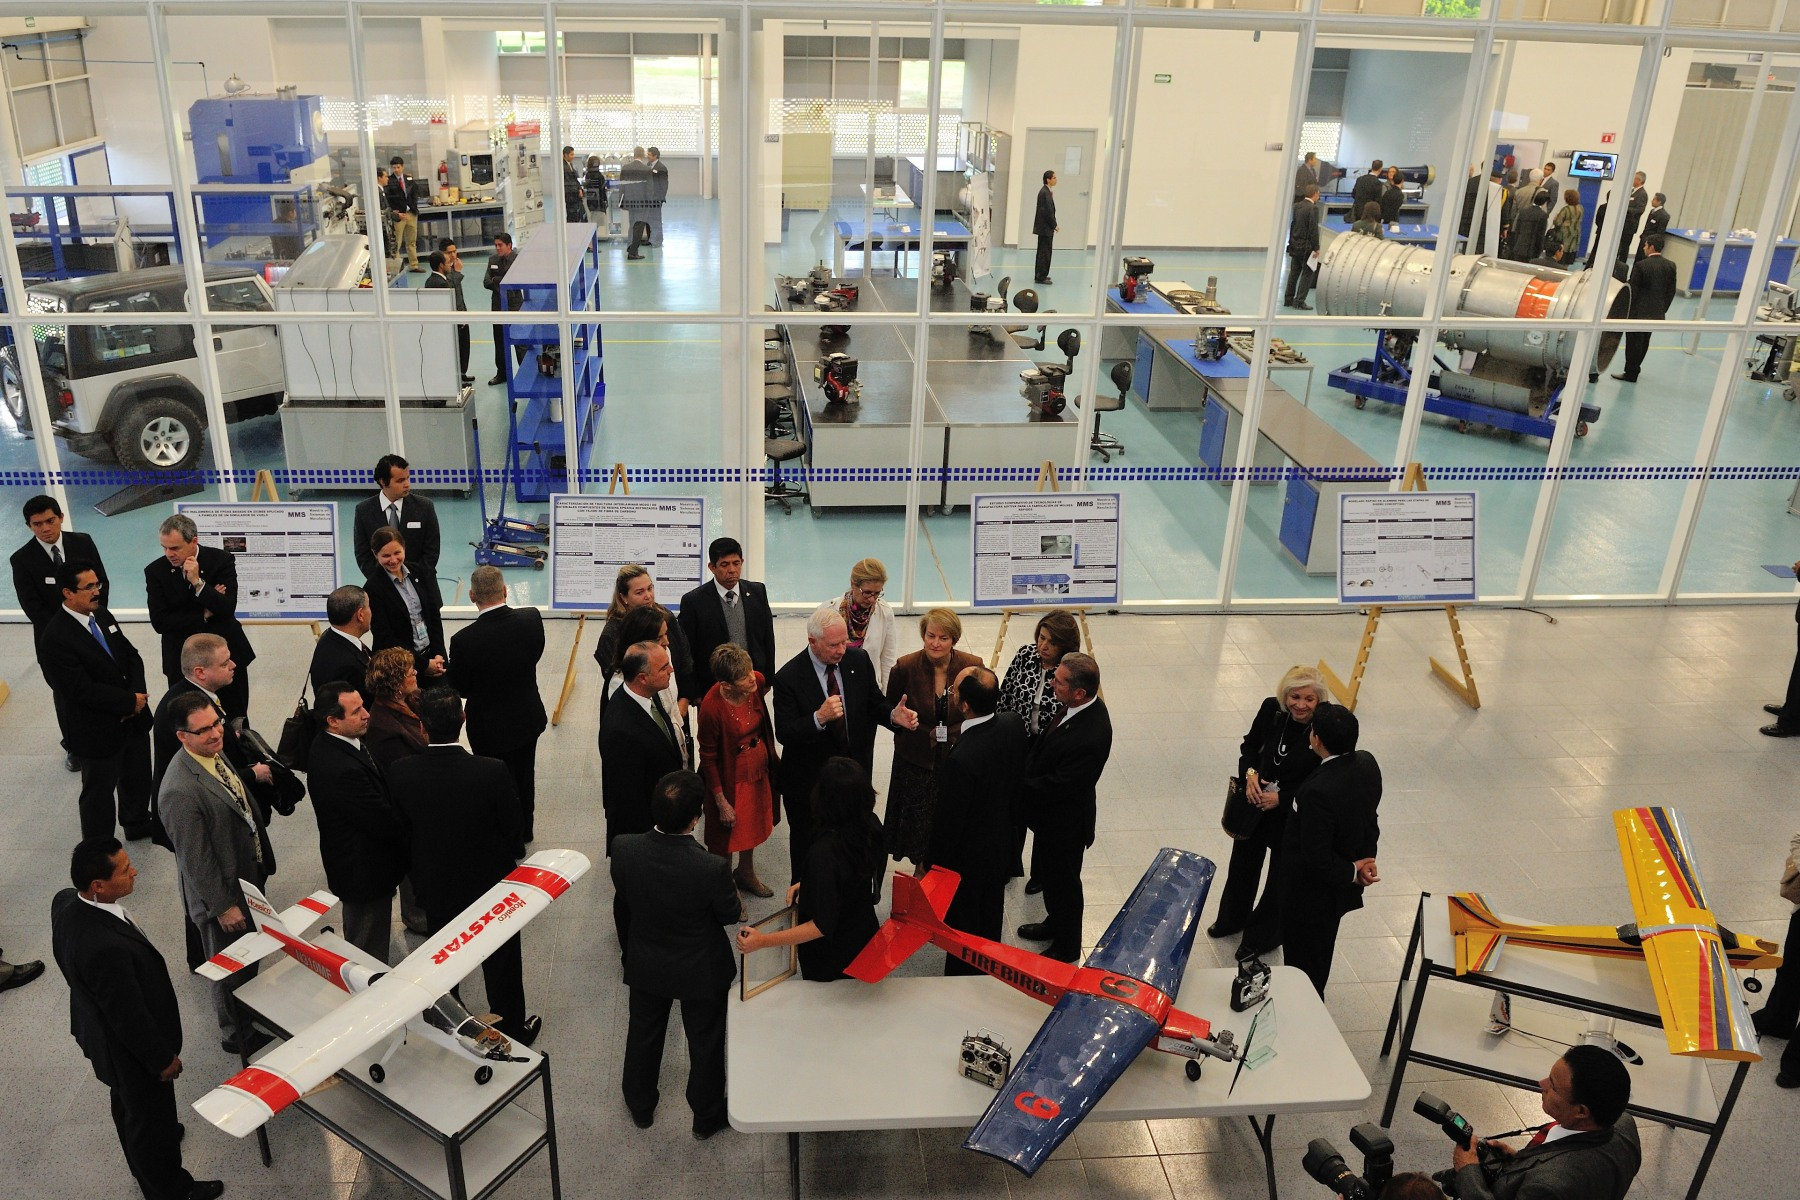 Their Excellencies and the delegation visited the Center for Innovation in Advanced Manufacturing (CIMA) at Tec de Monterrey, located in Querétaro.